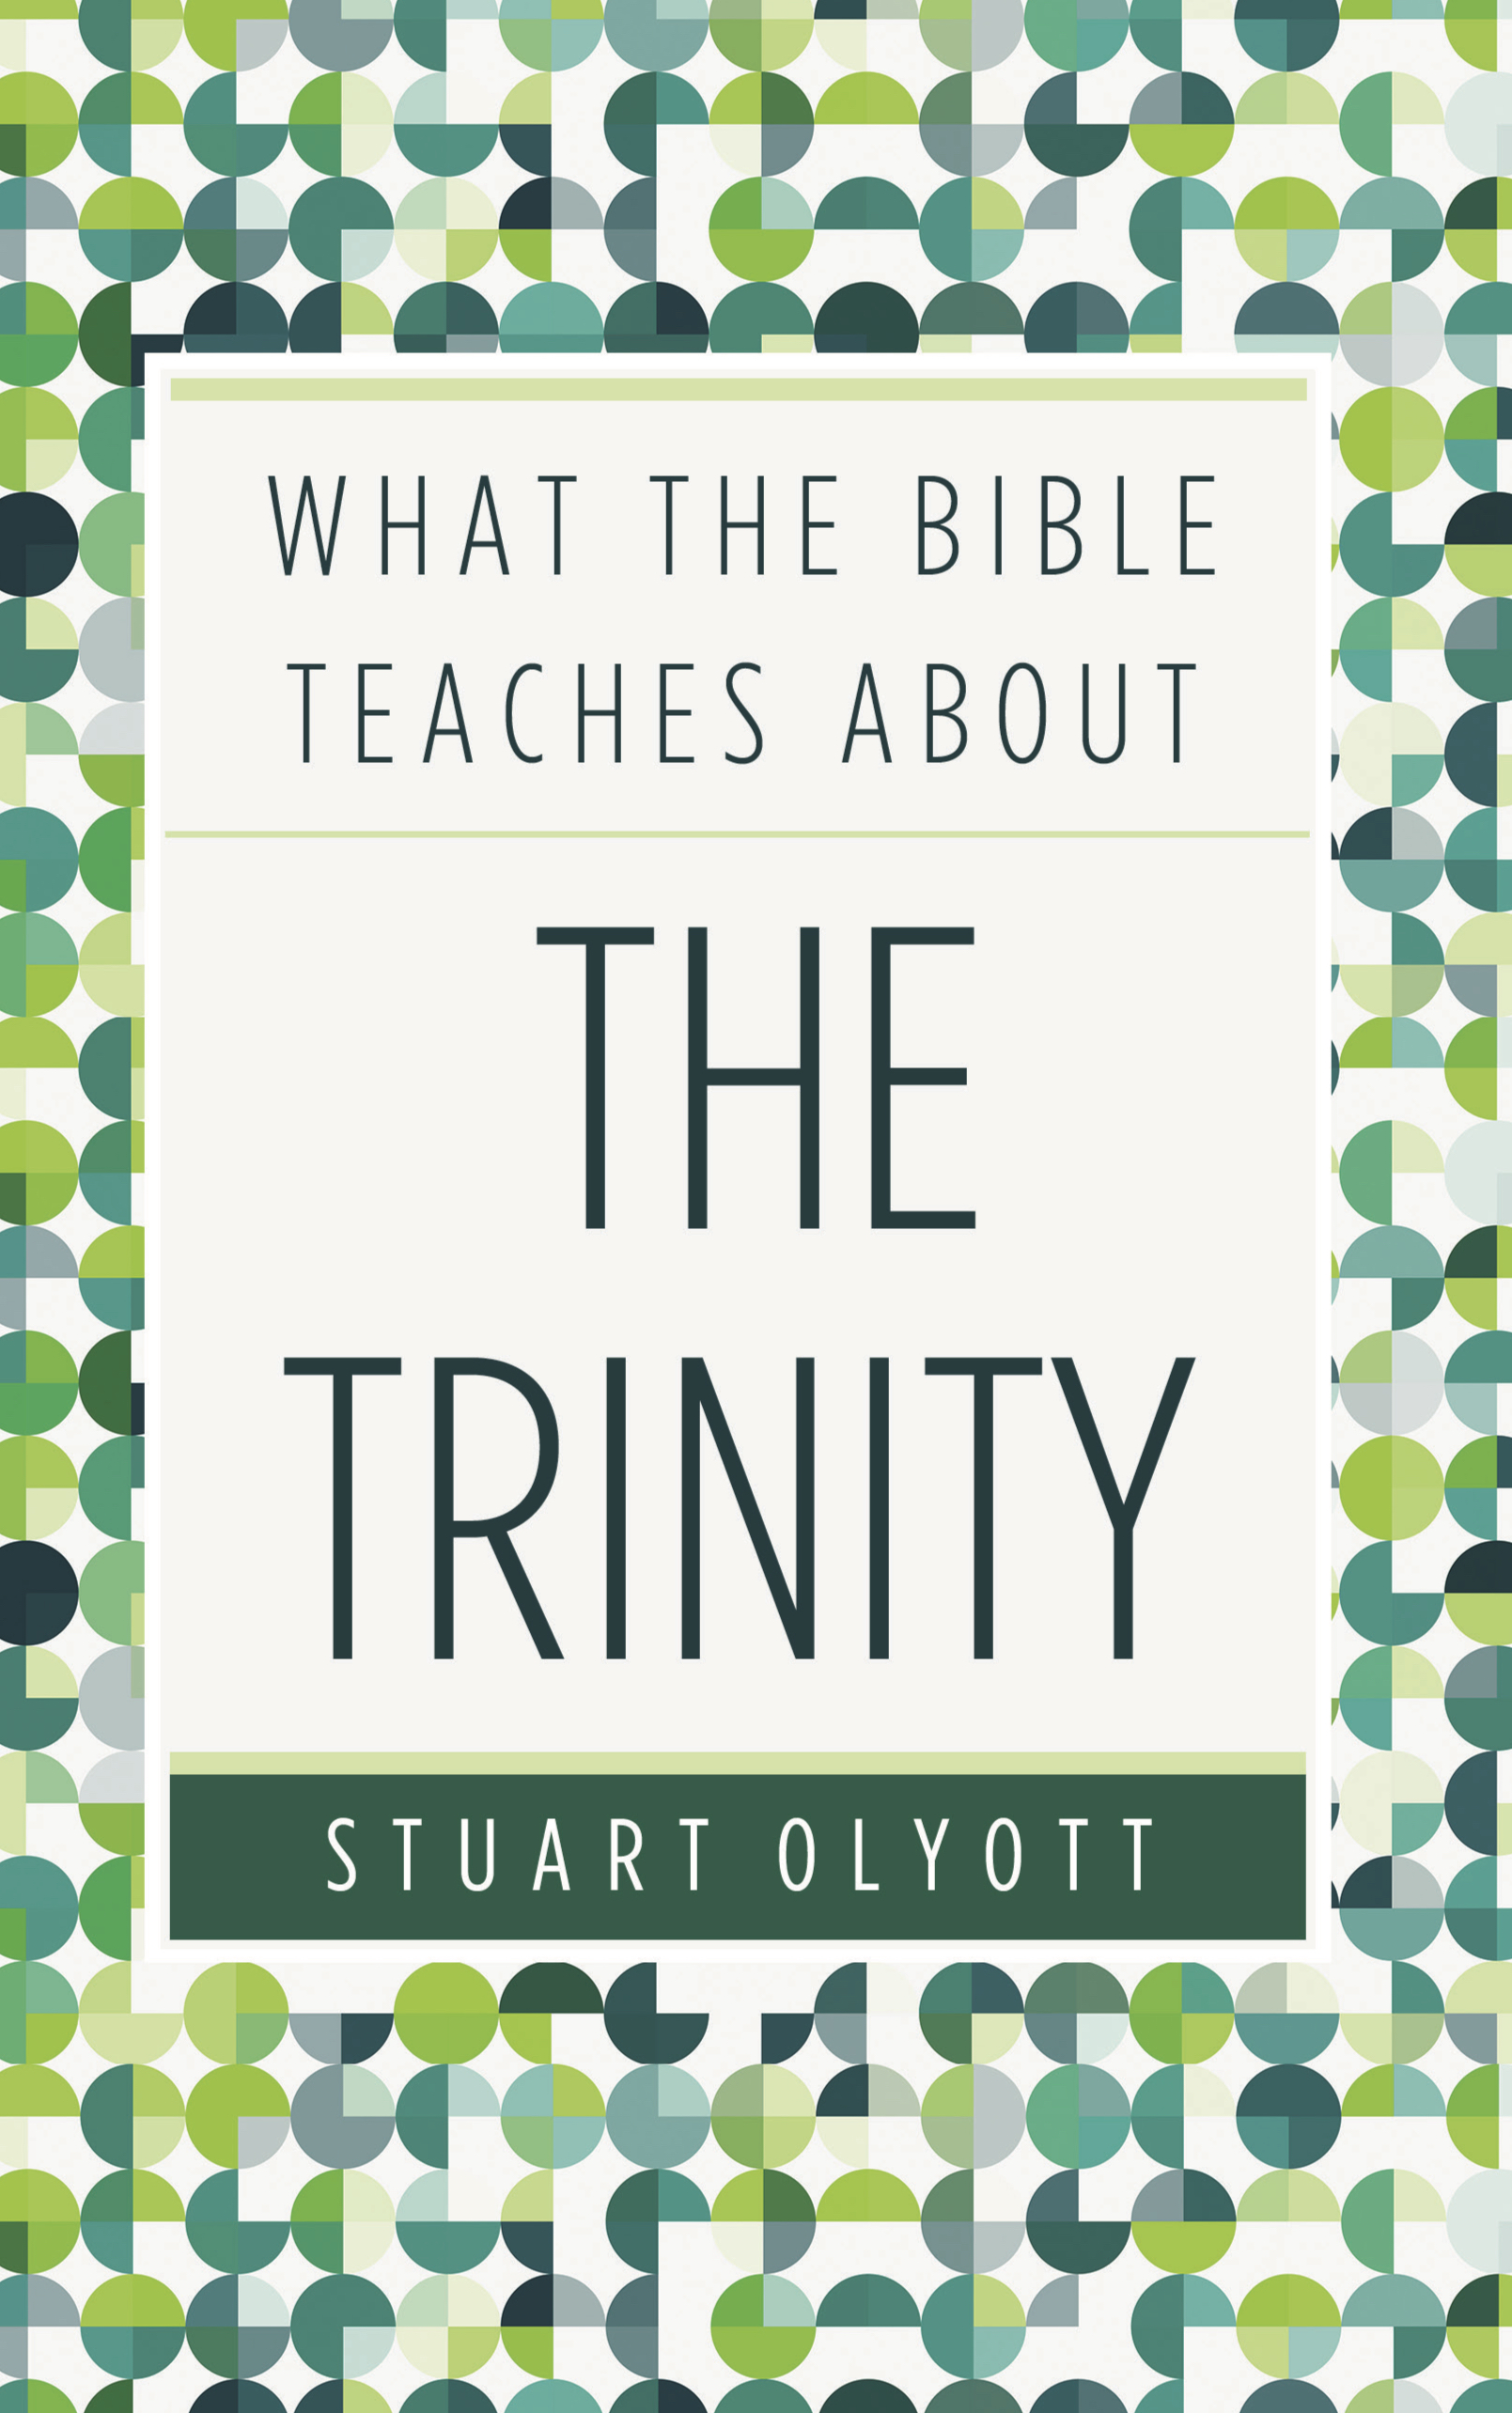 Ep Books The Store For Books: What The Bible Teaches About The Trinity By Stuart Olyott